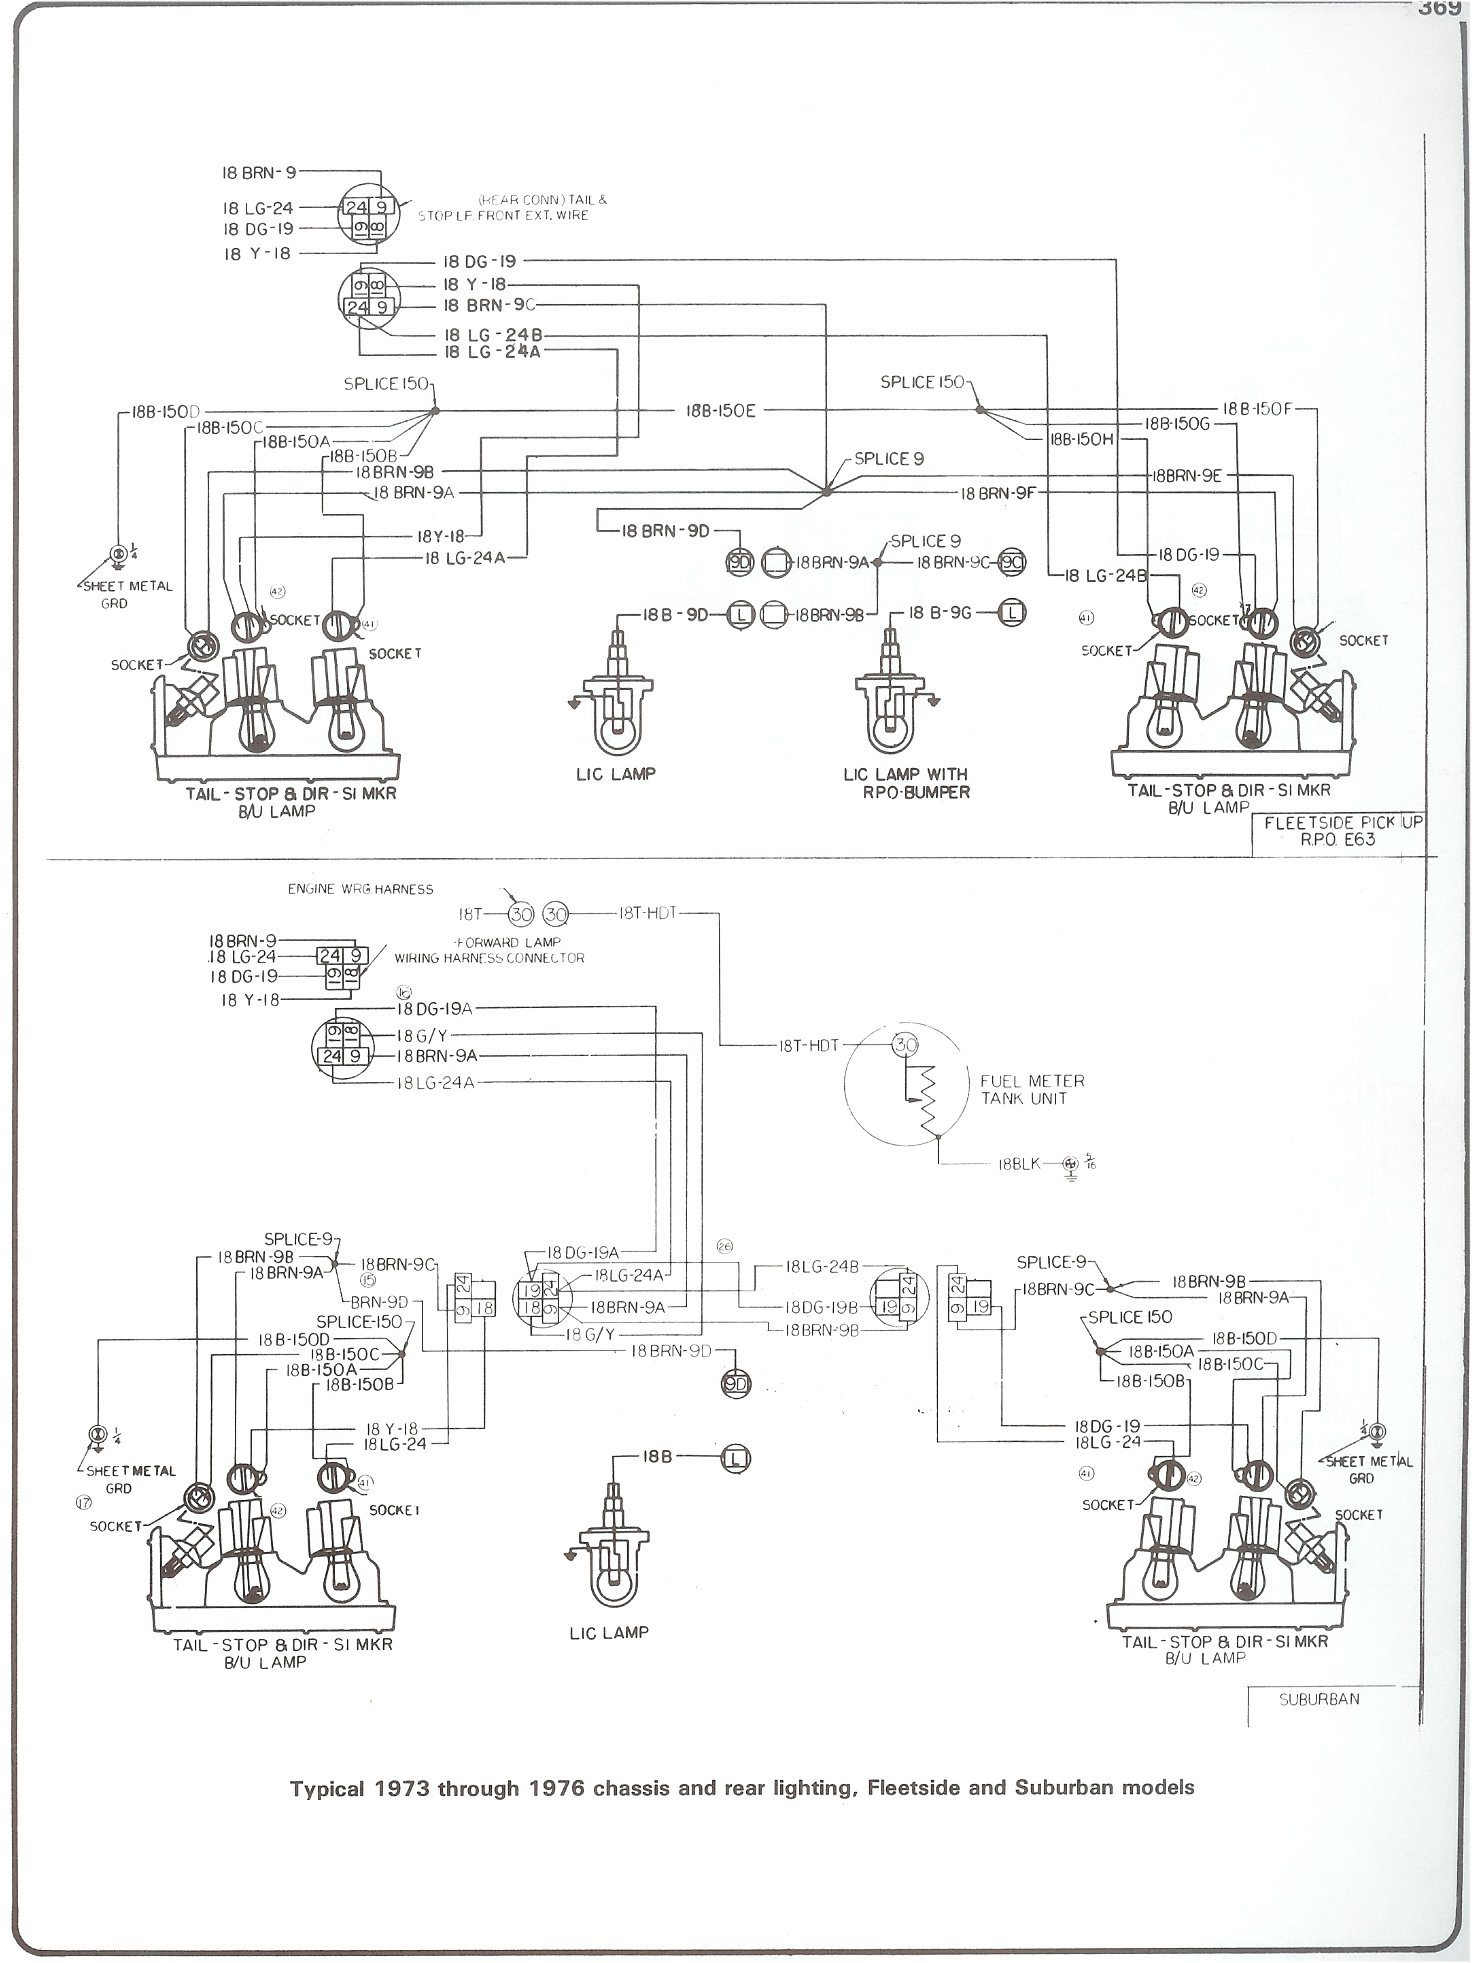 Complete 73 87 Wiring Diagrams 2000 Gmc Sierra Blower Motor Diagram 76 Chassis Rear Lighting Fleetside And Suburban